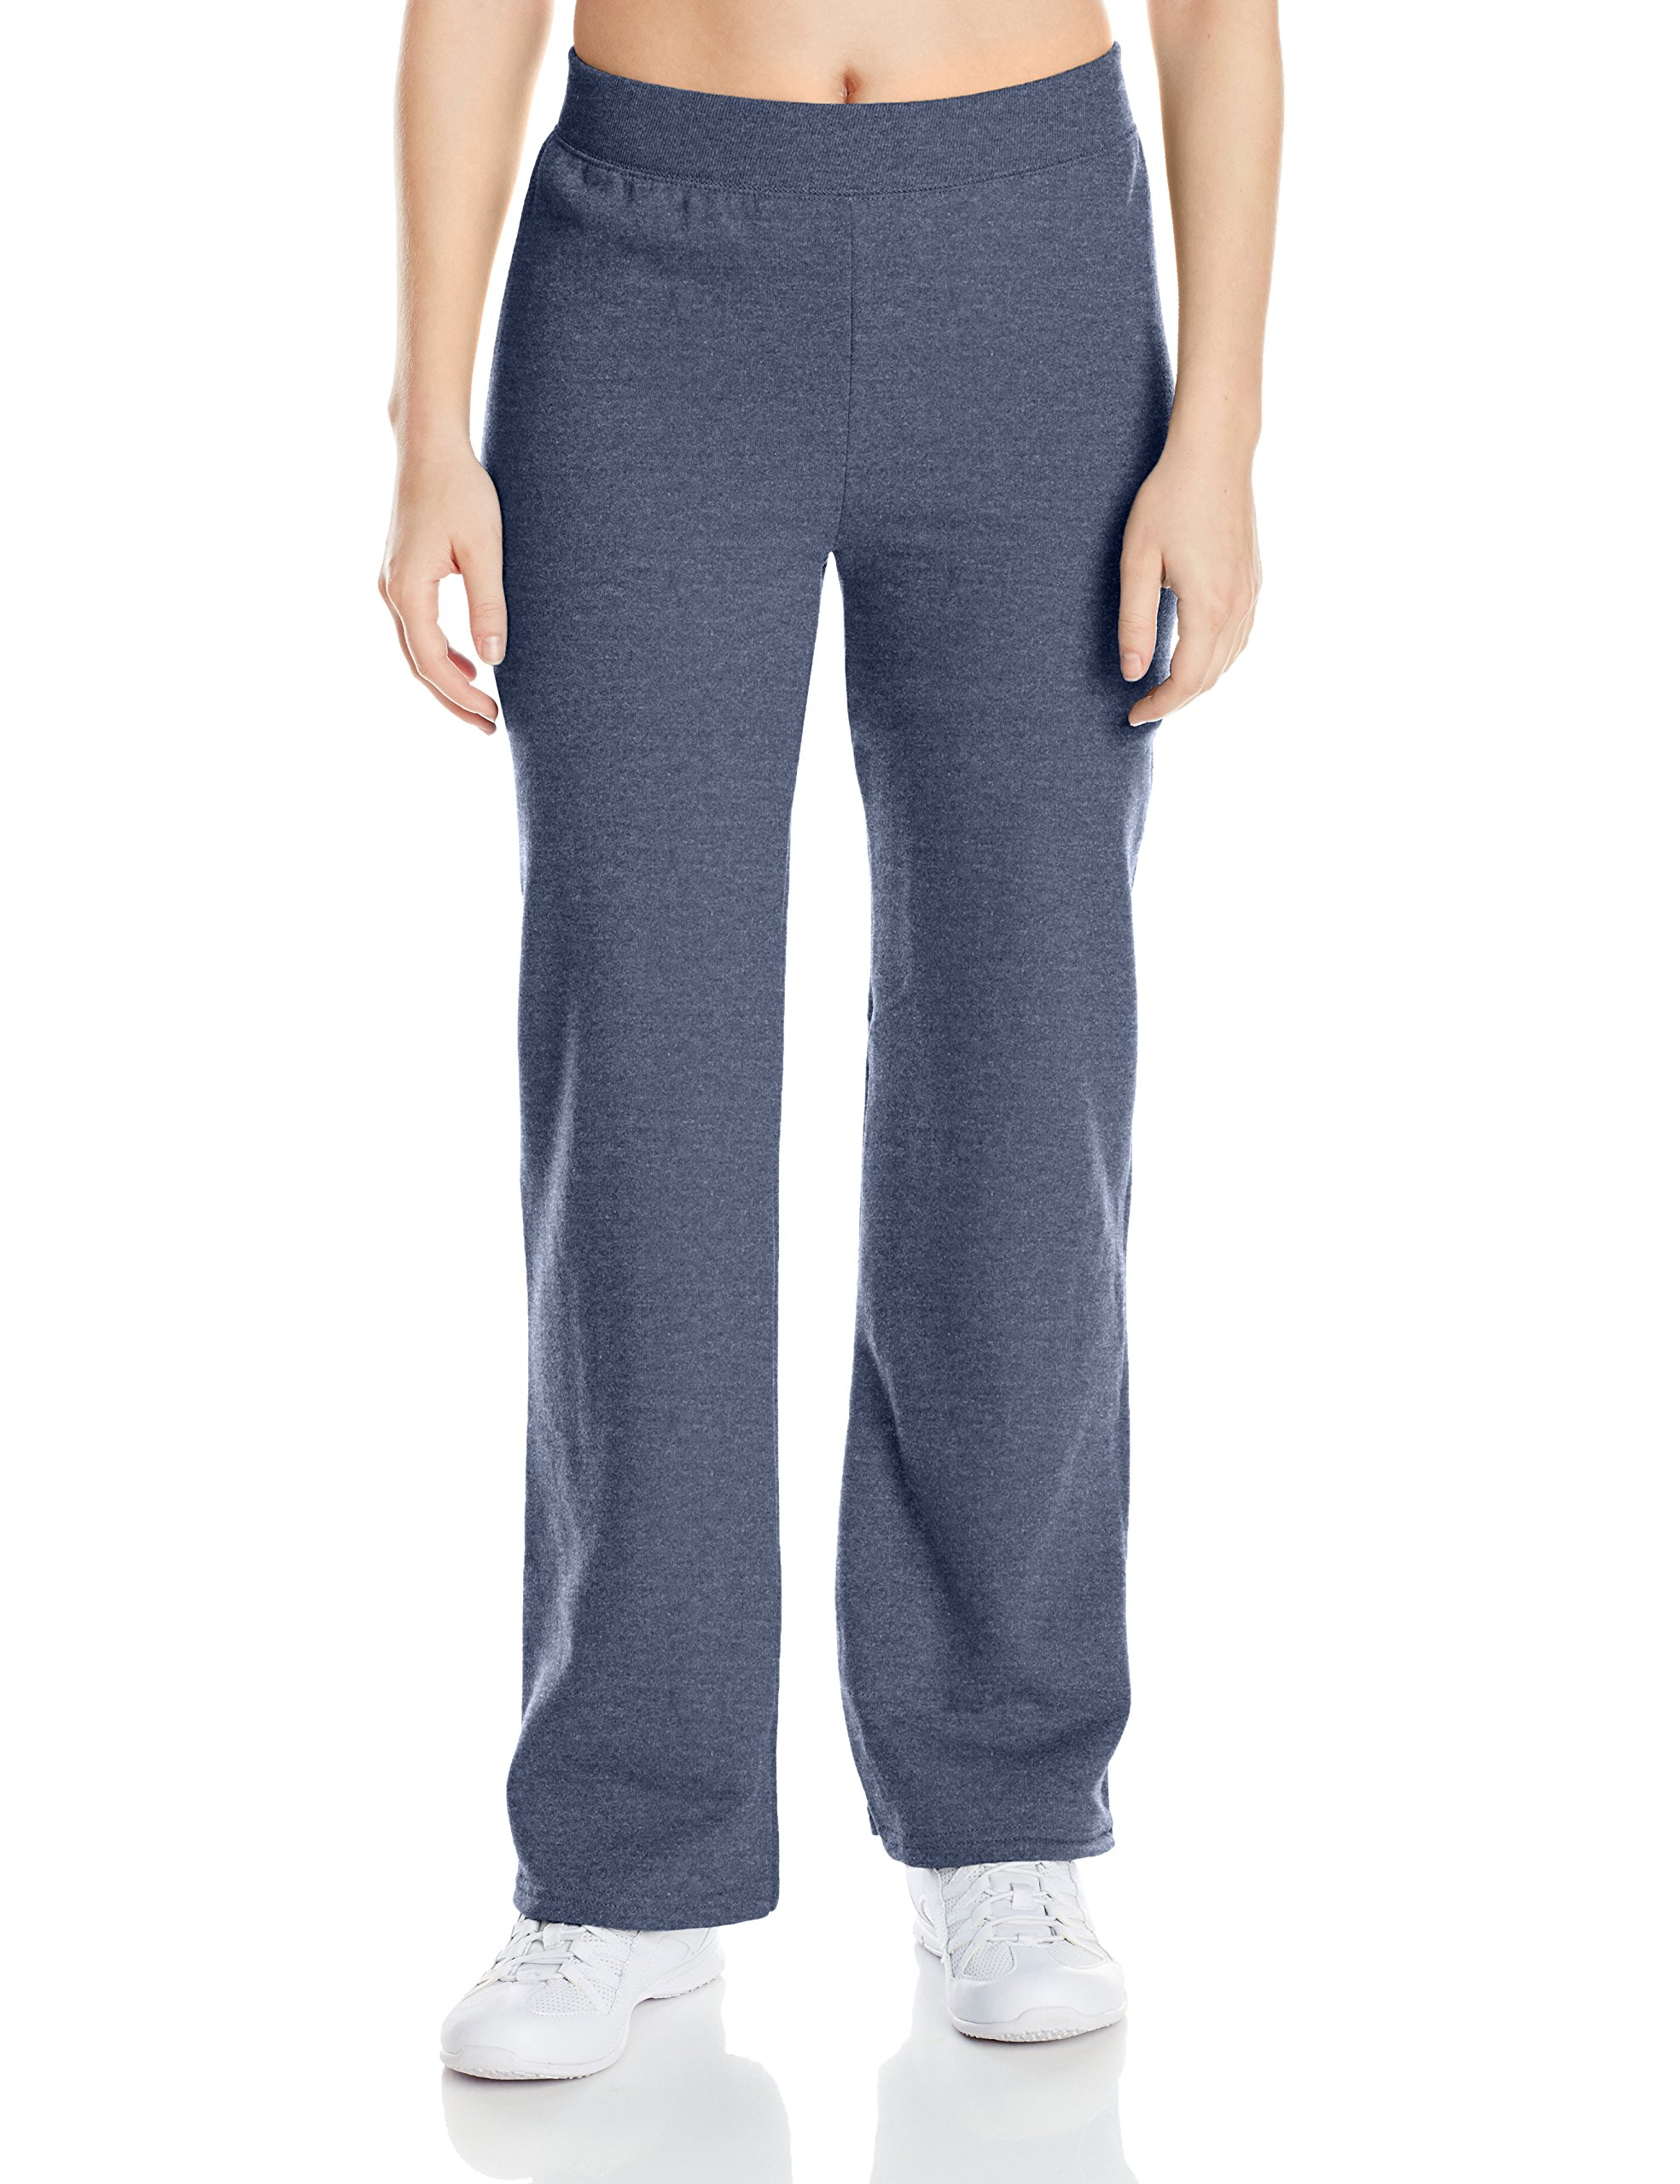 Hanes Women's Middle Rise Sweatpant, Navy Heather, Large by Hanes (Image #1)